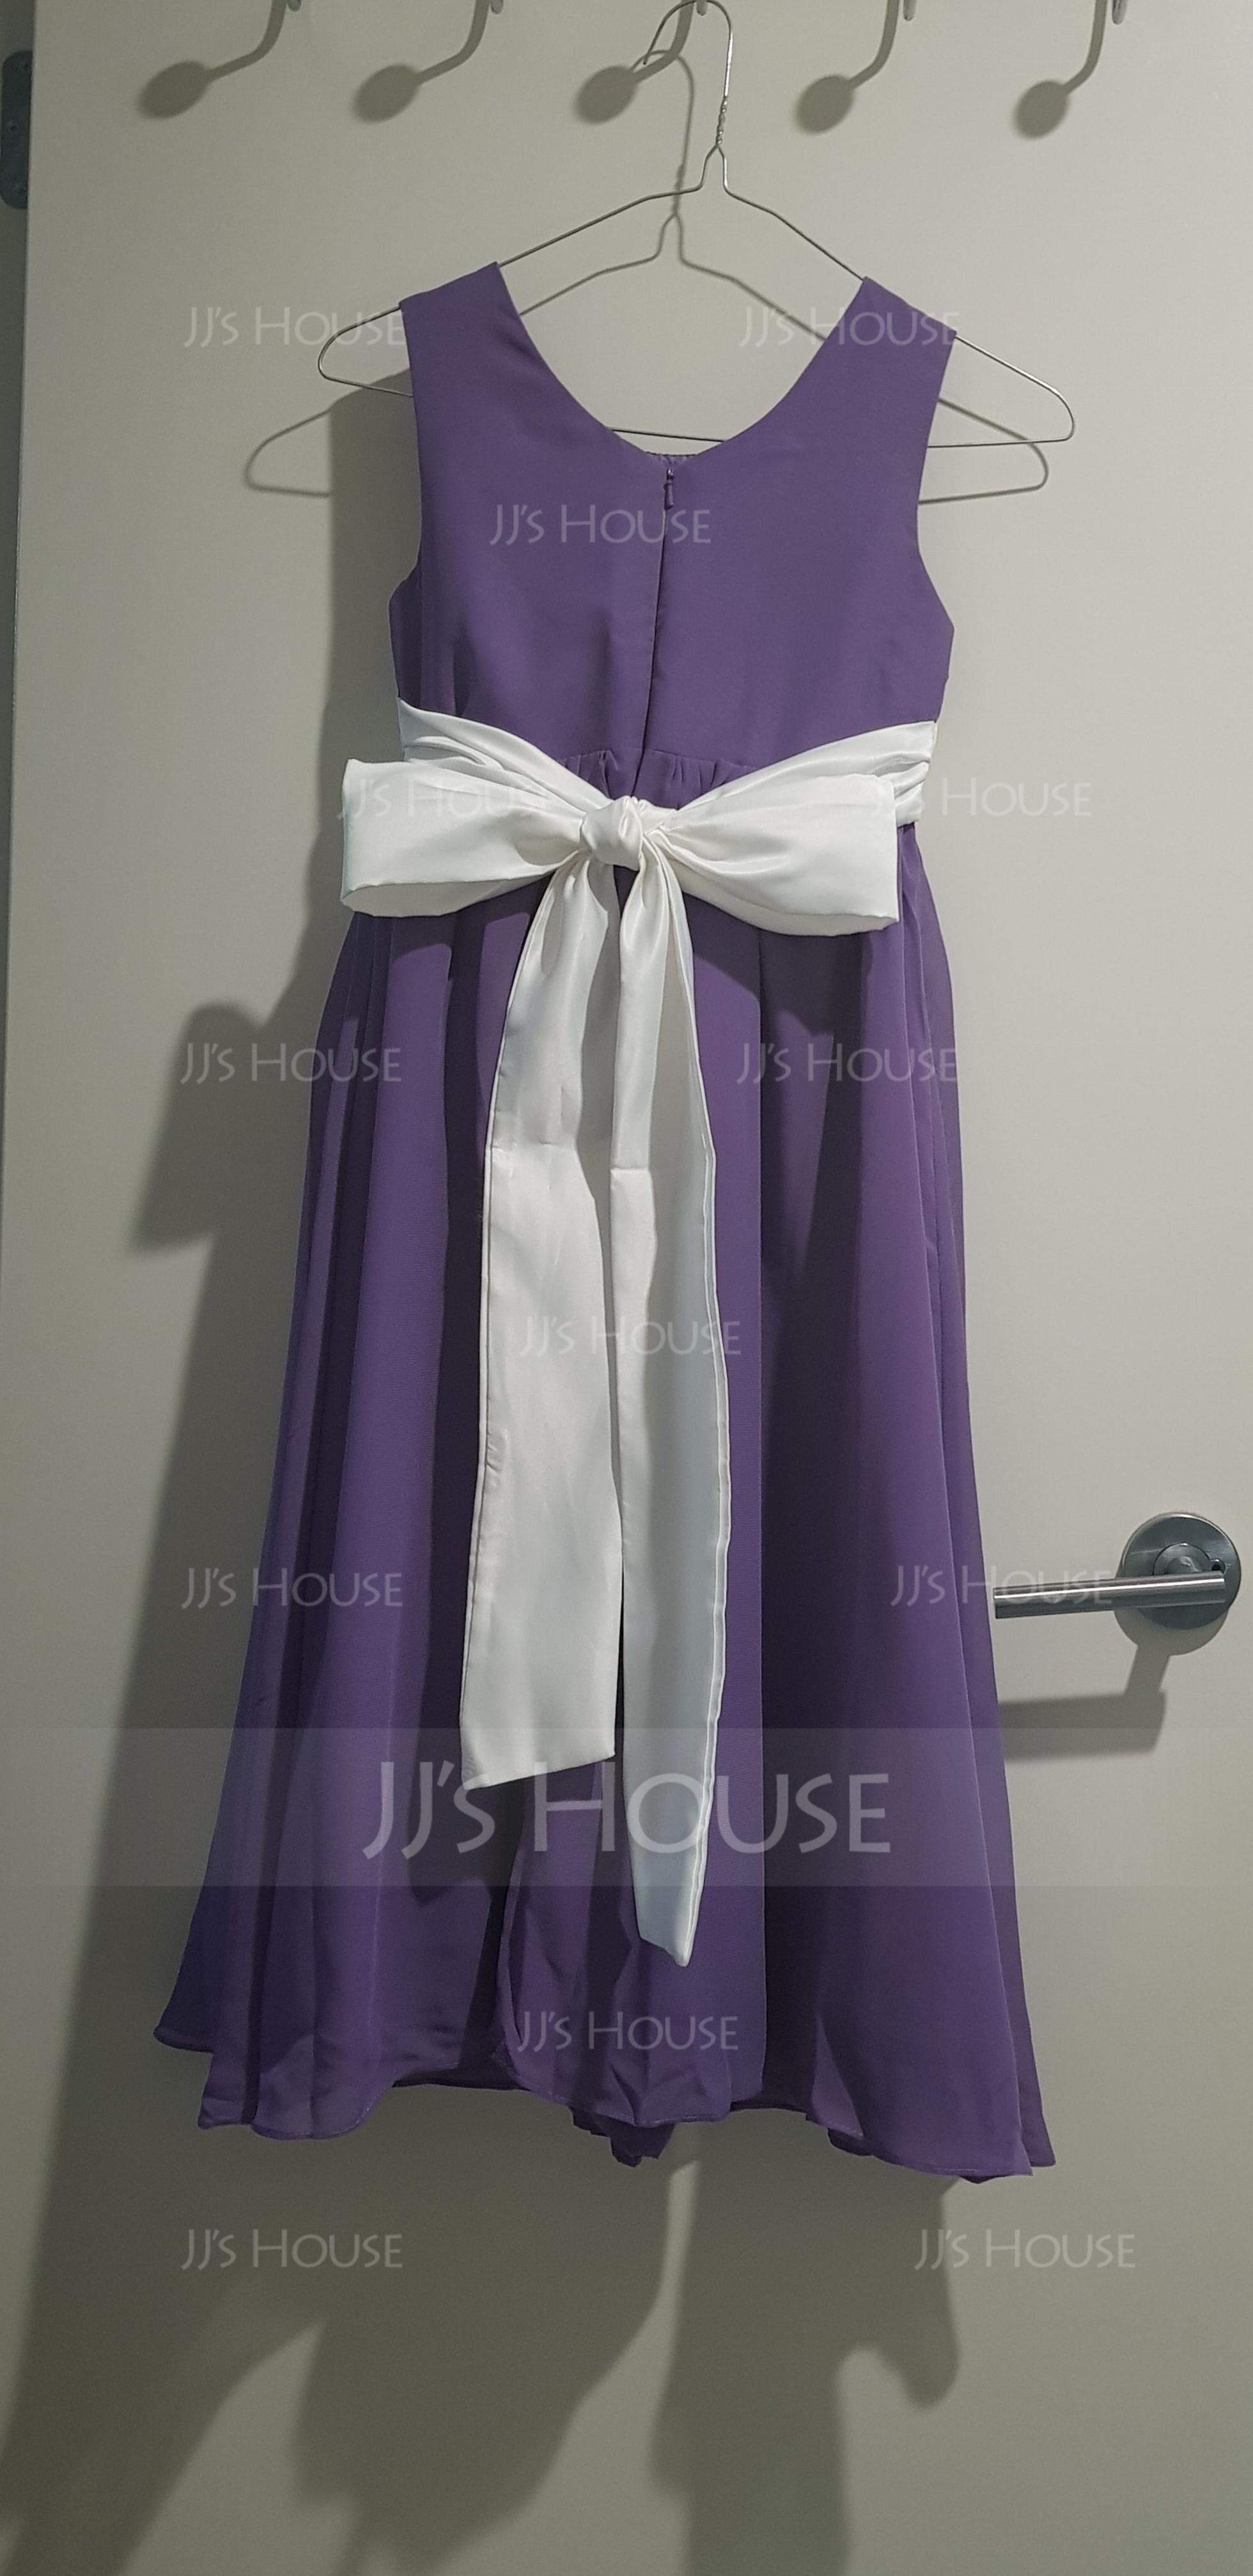 A-Line/Princess Ankle-length Flower Girl Dress - Chiffon/Satin Sleeveless Scoop Neck With Sash/Bow(s) (010136597)